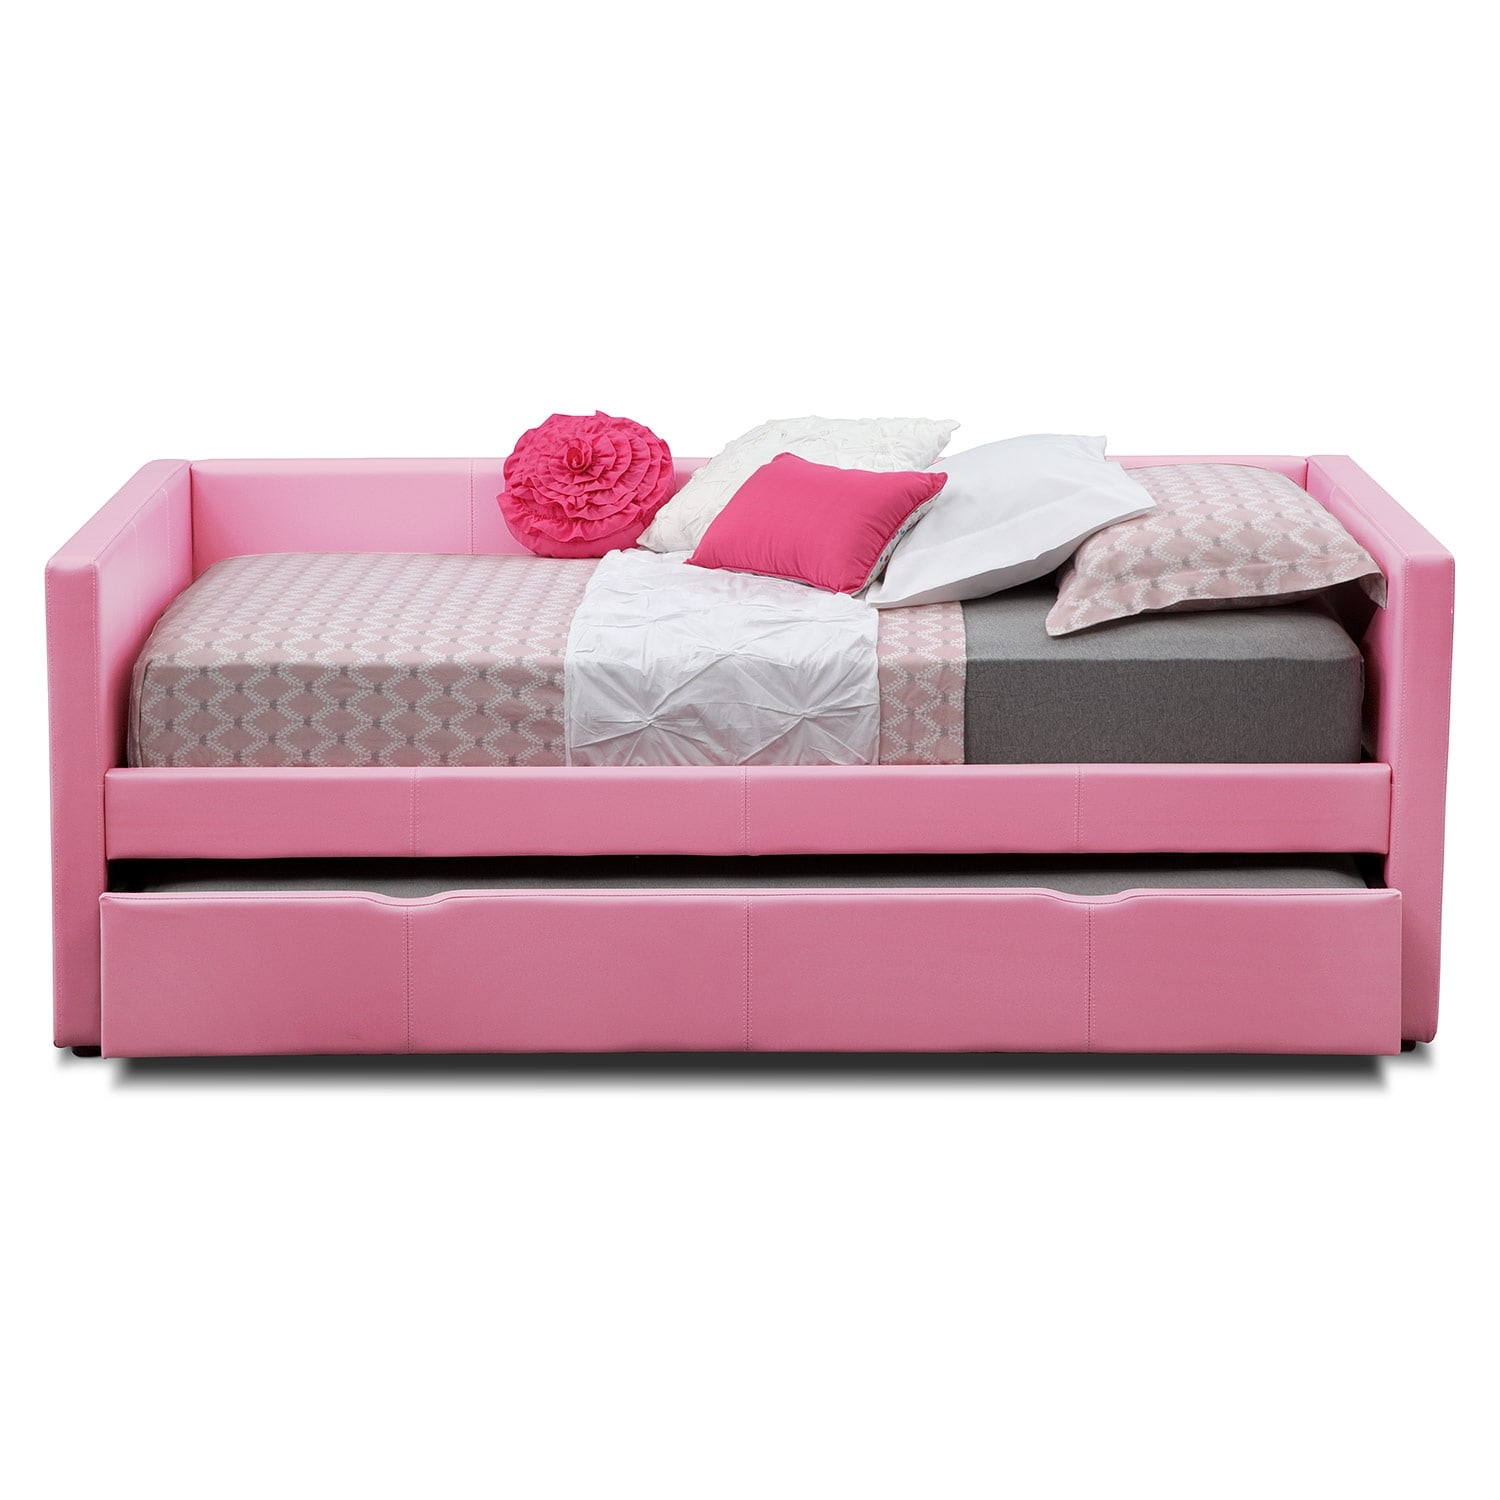 pink sofa bed for sale costco carey full daybed with trundle american signature